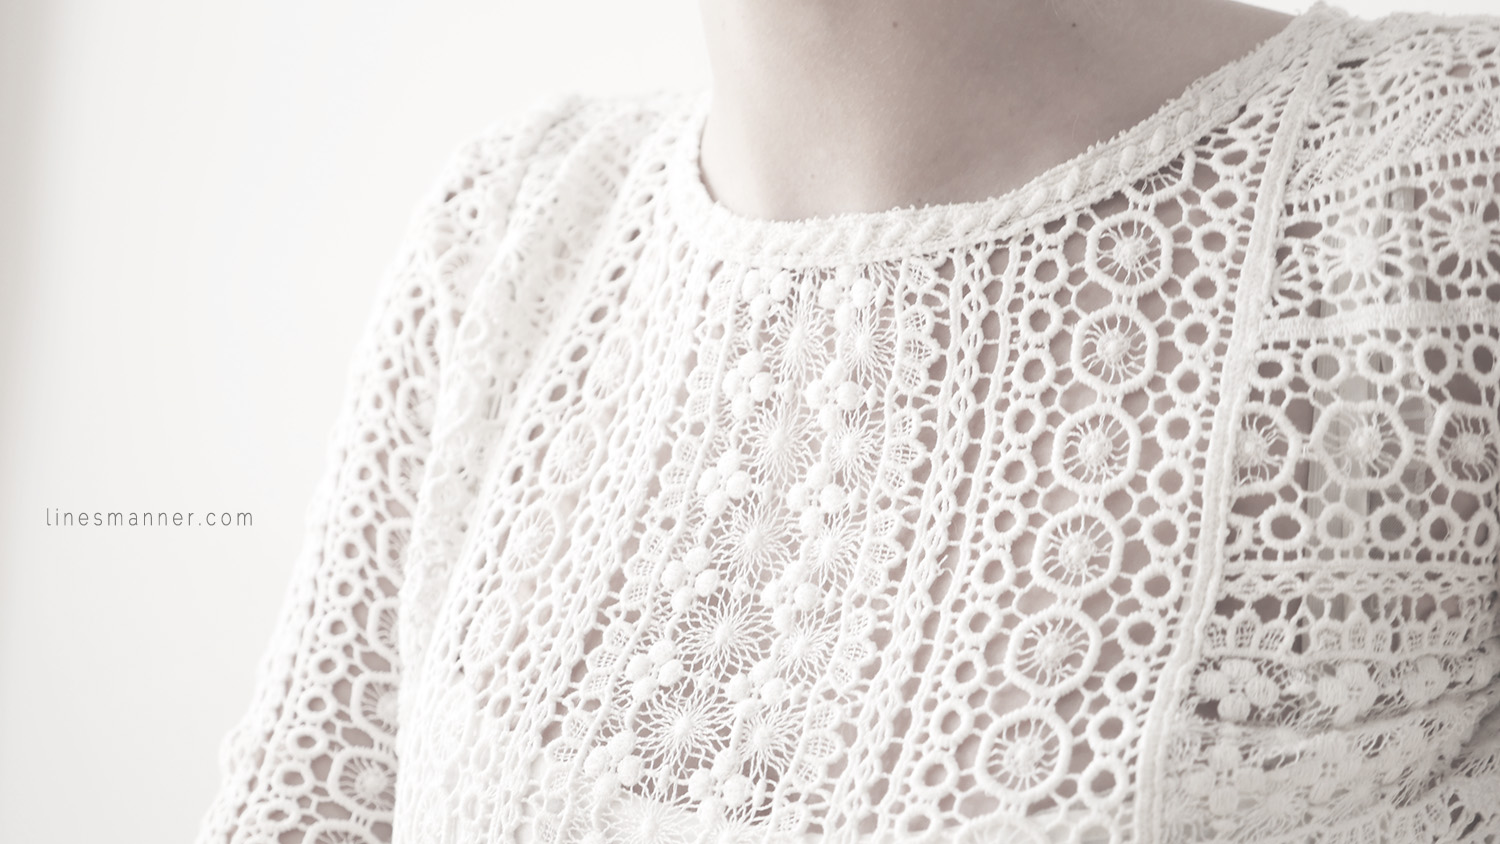 Lines-Manner-Remind-2015-Minimal-Essential-Outfit-Inspiration-Blog-Timeless-Year-Seasons-Details-Travel-Fashion-Versatile-Clean-Sleek-Quality-17